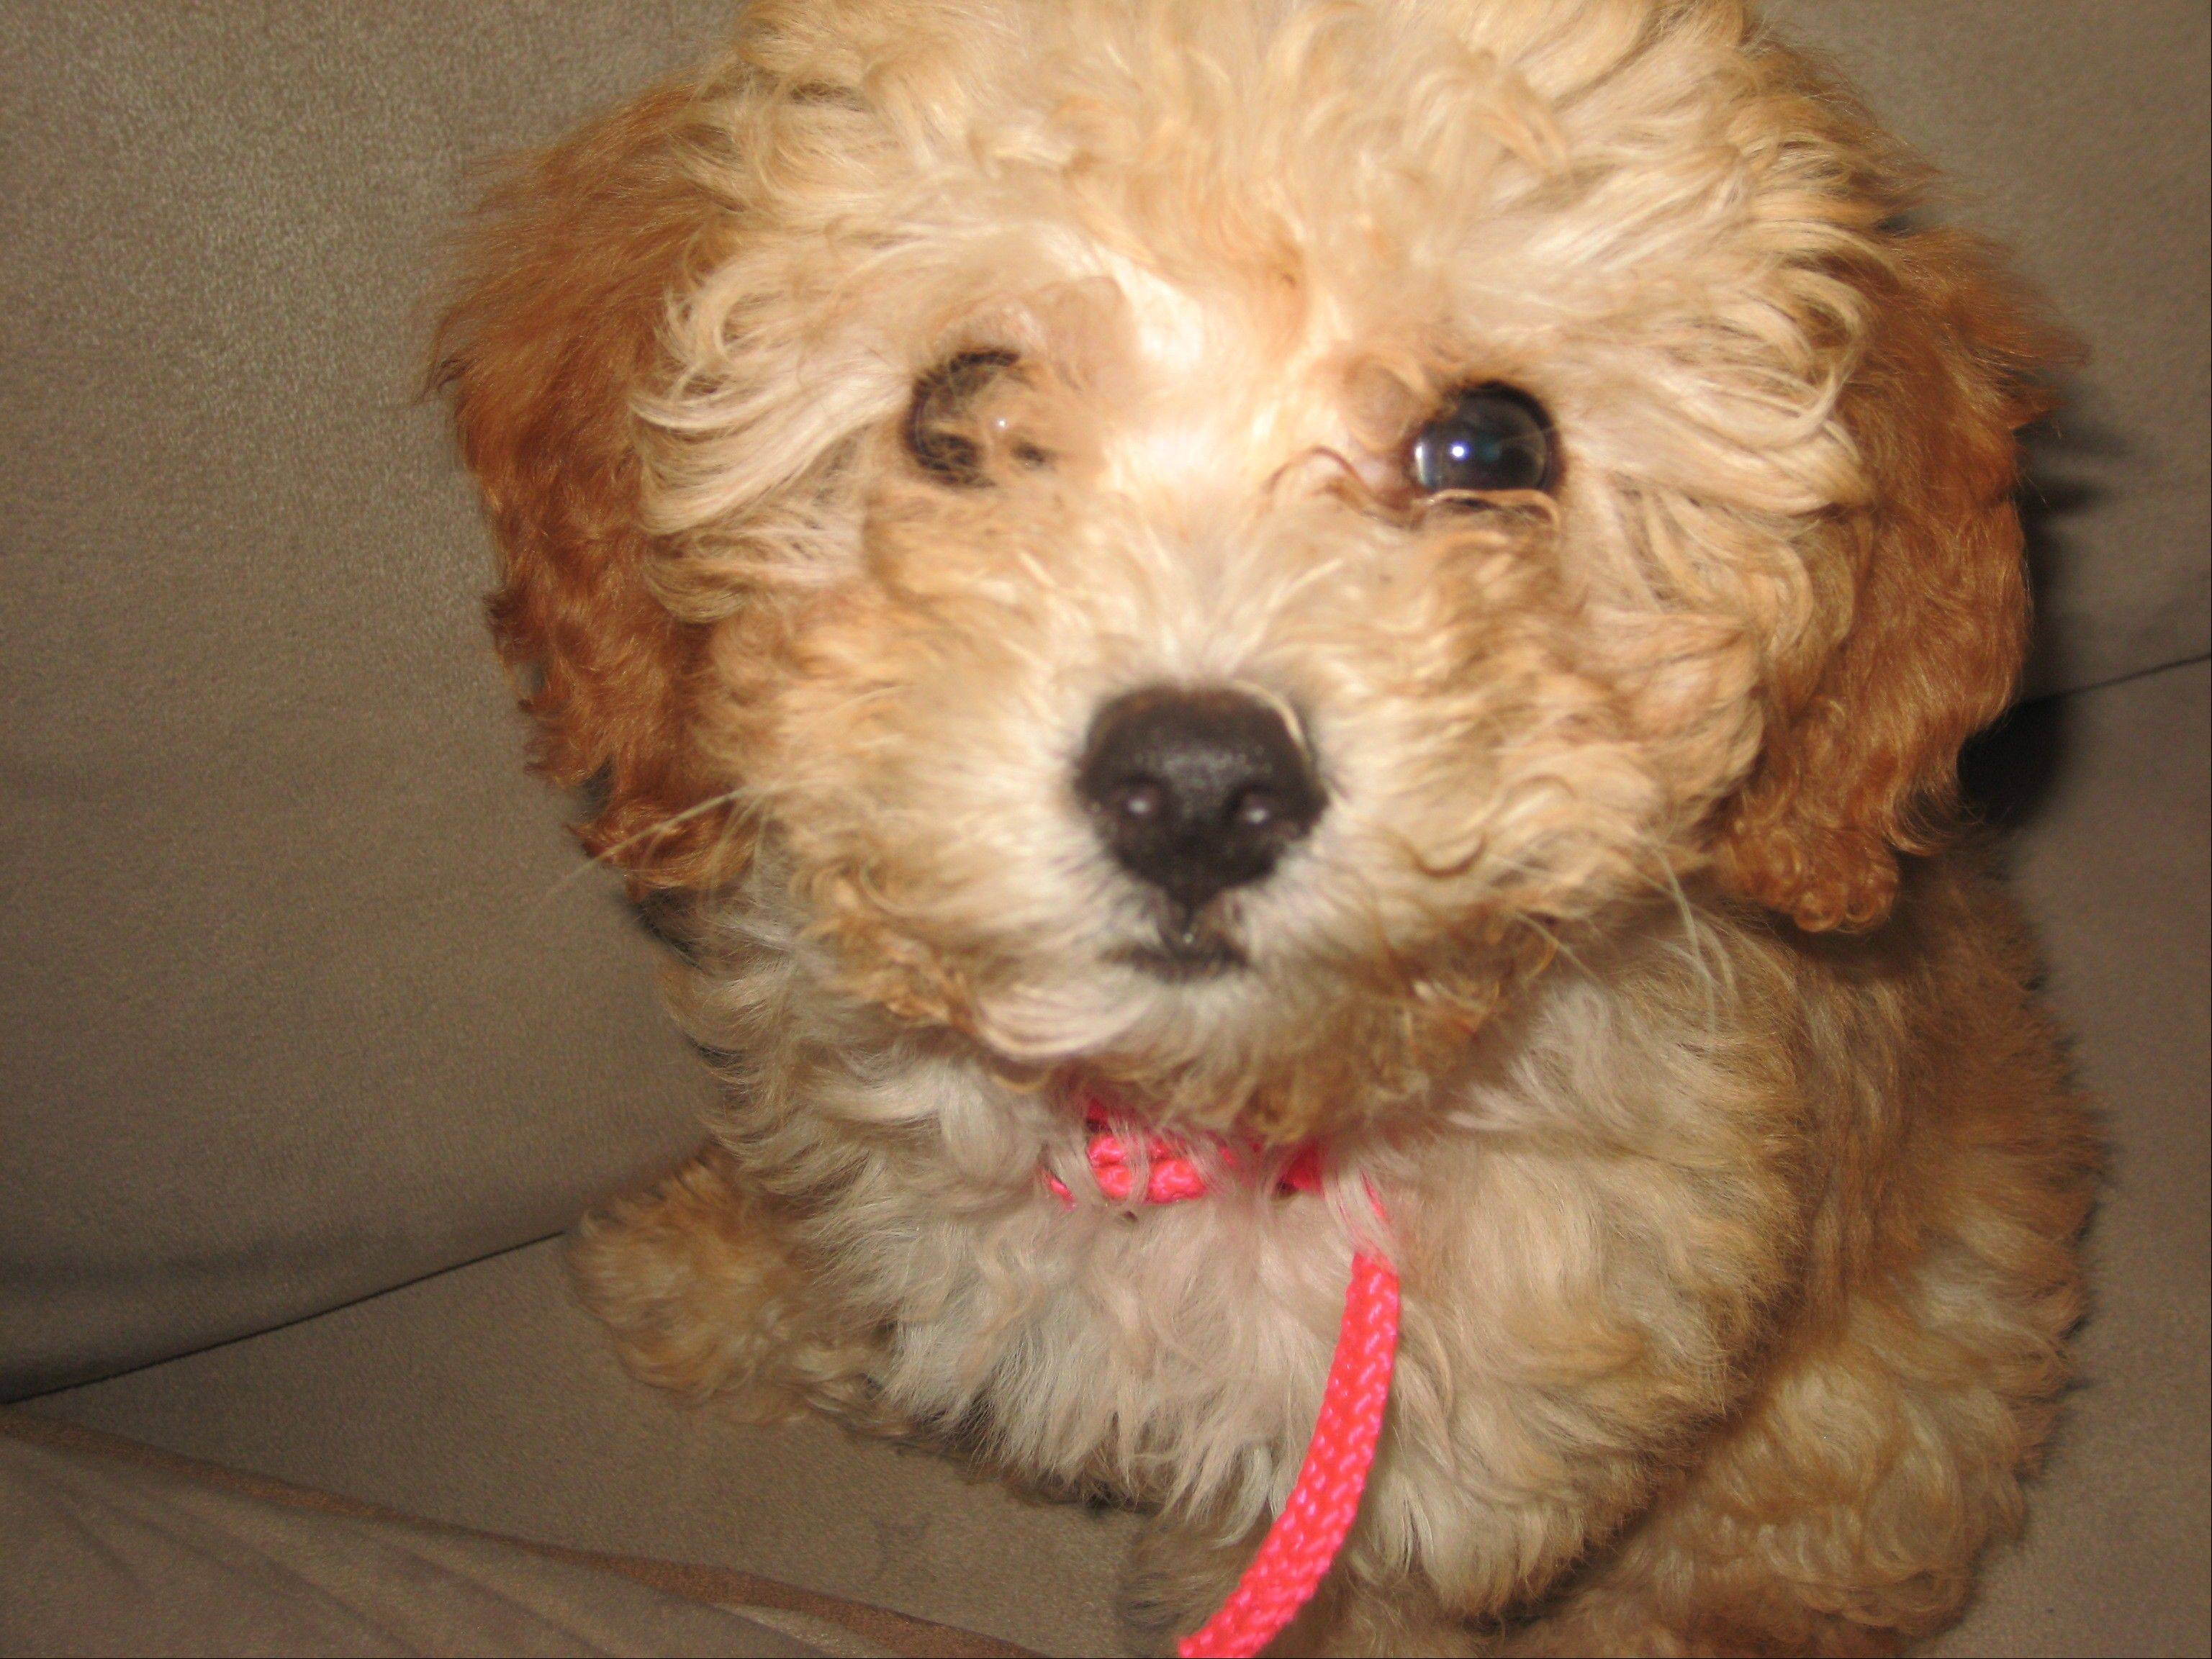 Daisy, a 3-year-old bichon frise-poodle mix, was killed by a pit bull on Sunday in Villa Park.